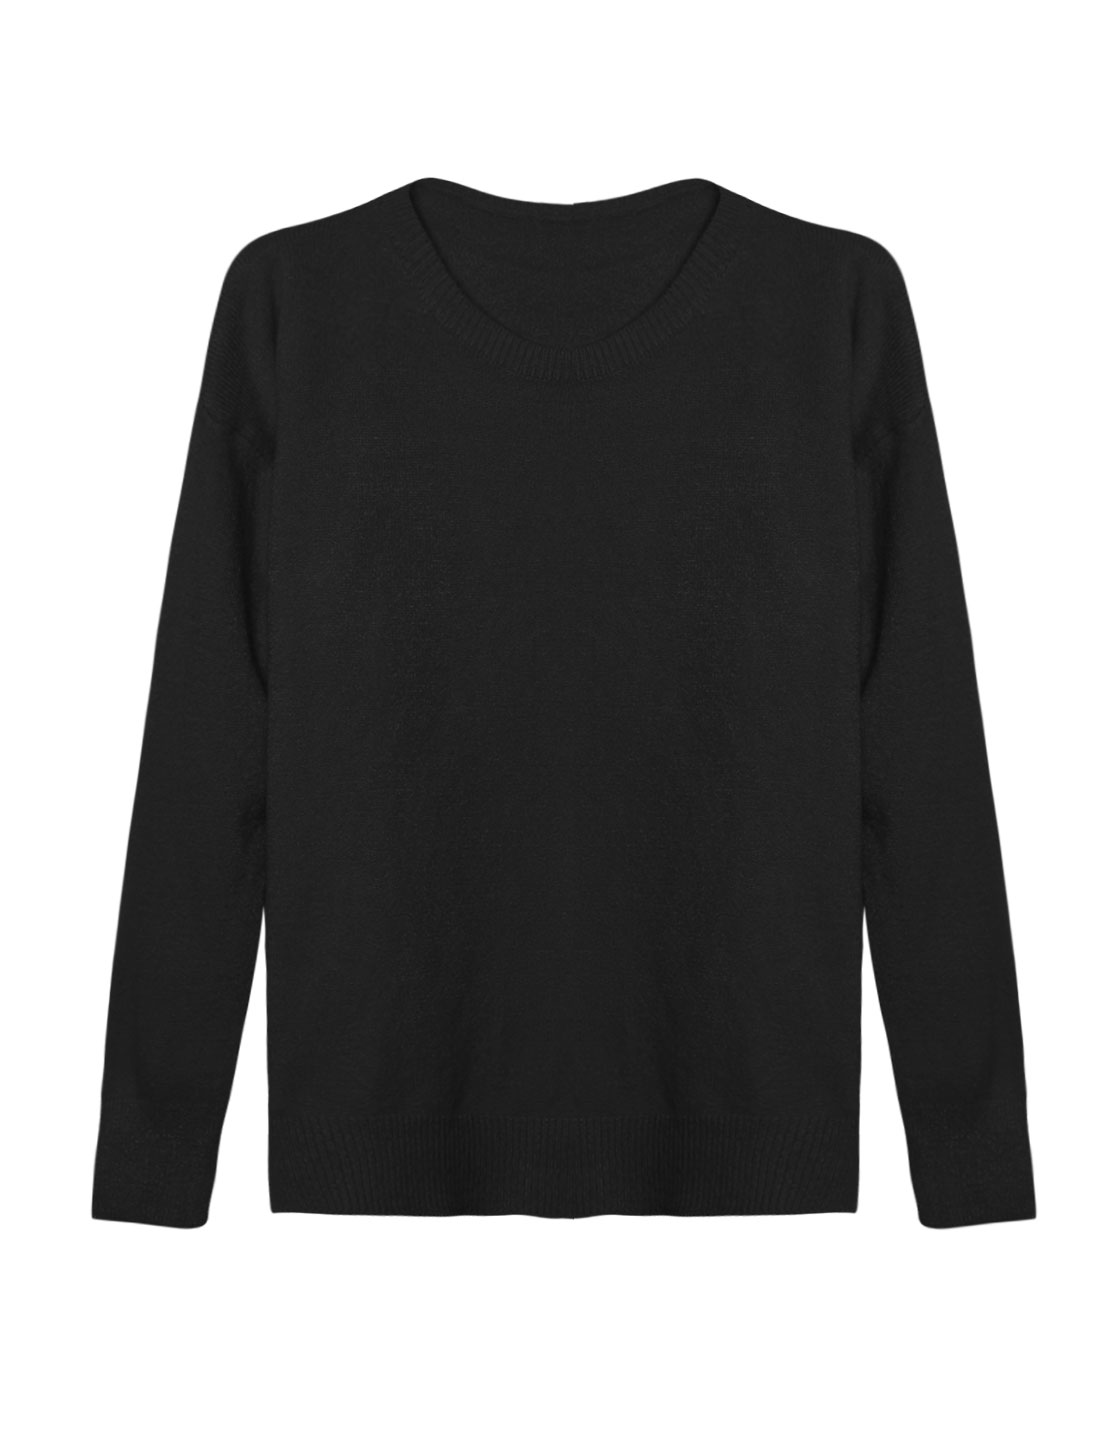 Woman Crew Neck Dolman Sleeves Ribbed Trim Knit Shirt Black XS